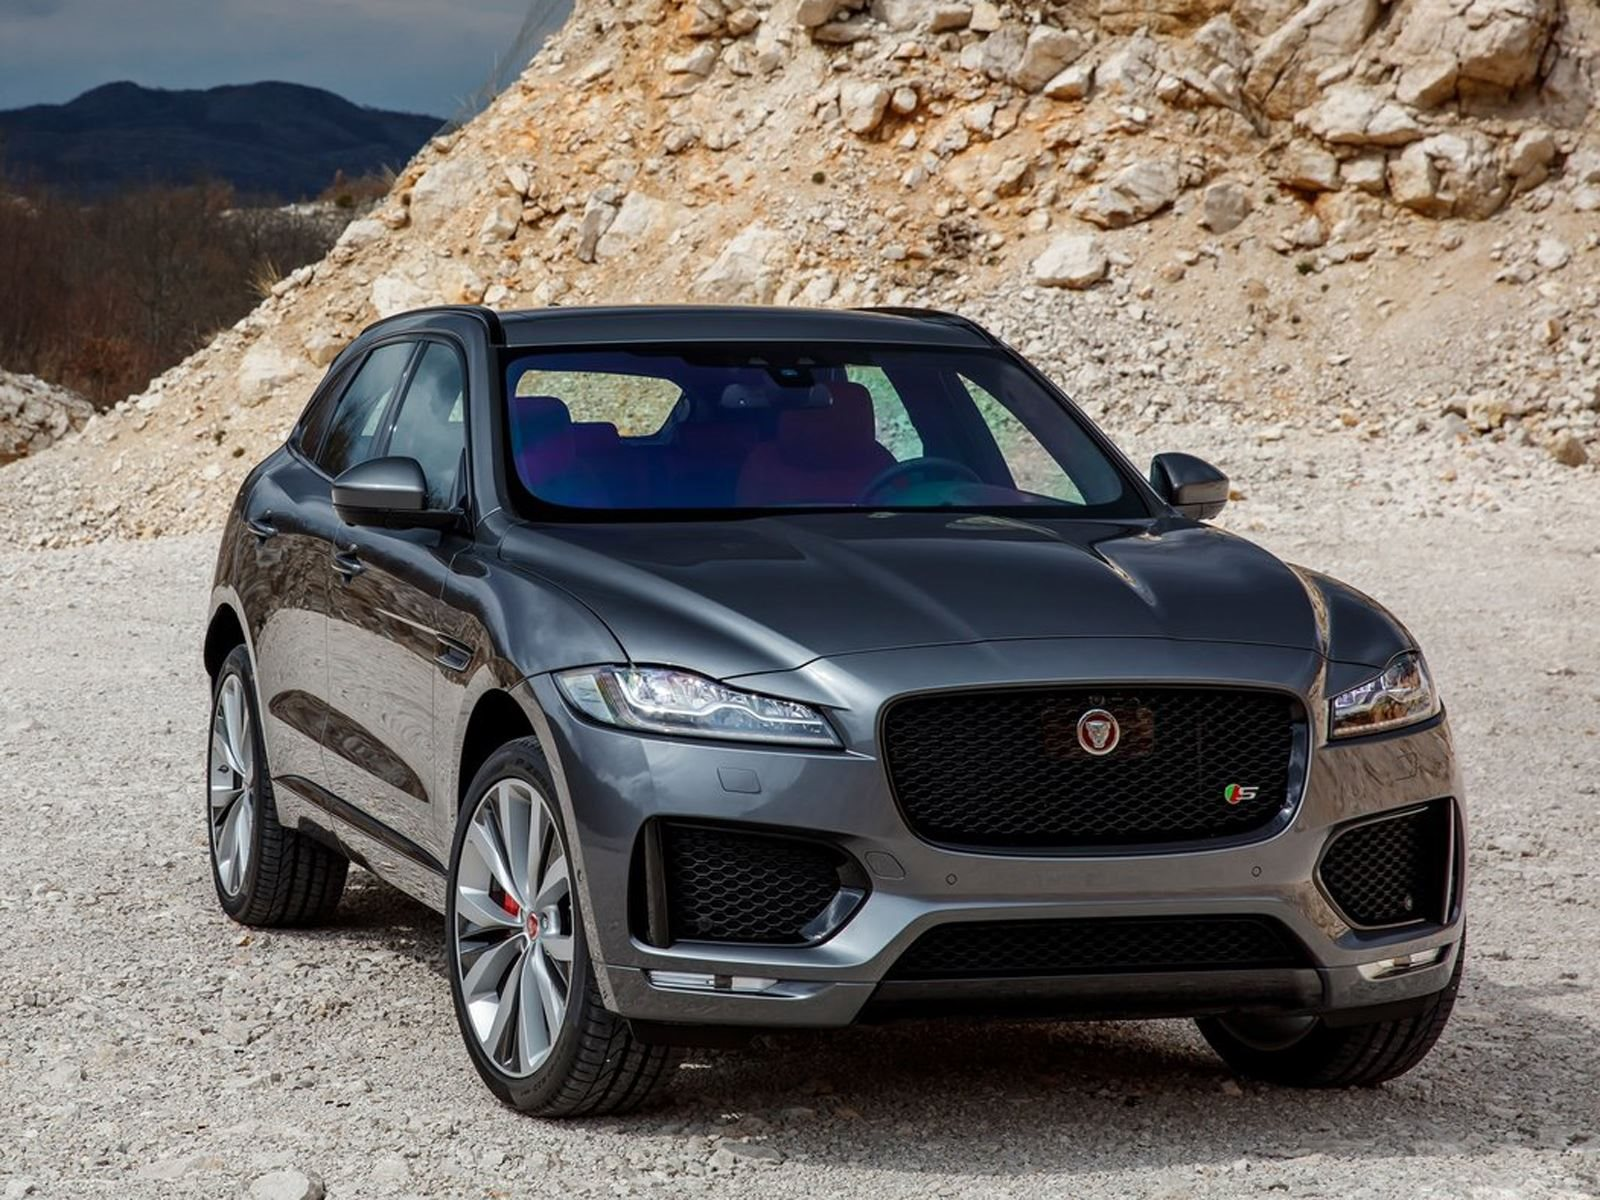 2021 Jaguar Suv Redesign and Concept